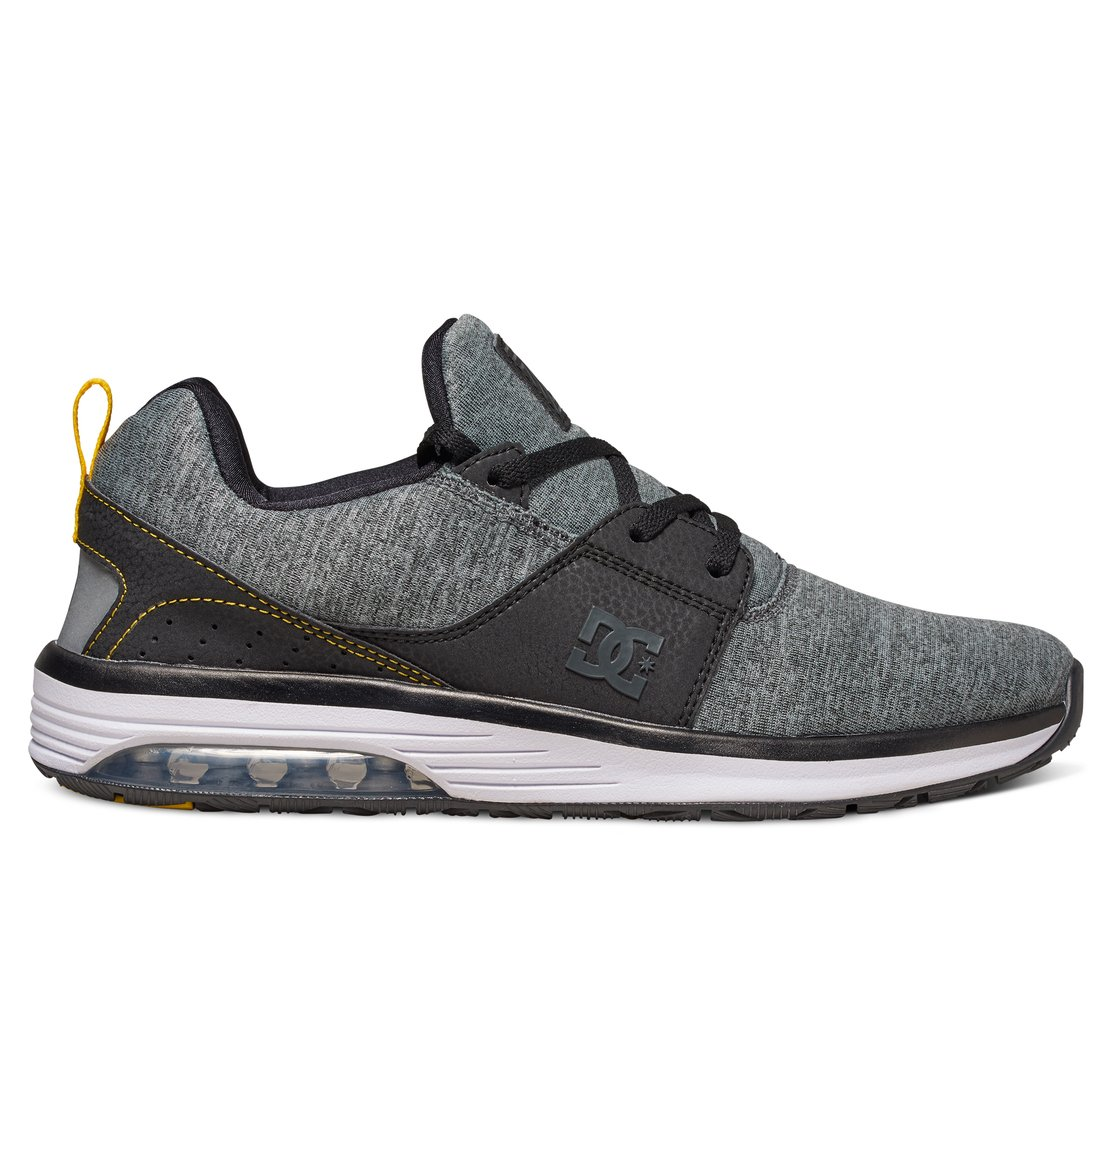 DC Shoes Heathrow EV - Shoes - Baskets - Garçon - US 12/UK 11/EU 29 - Noir cM9tV